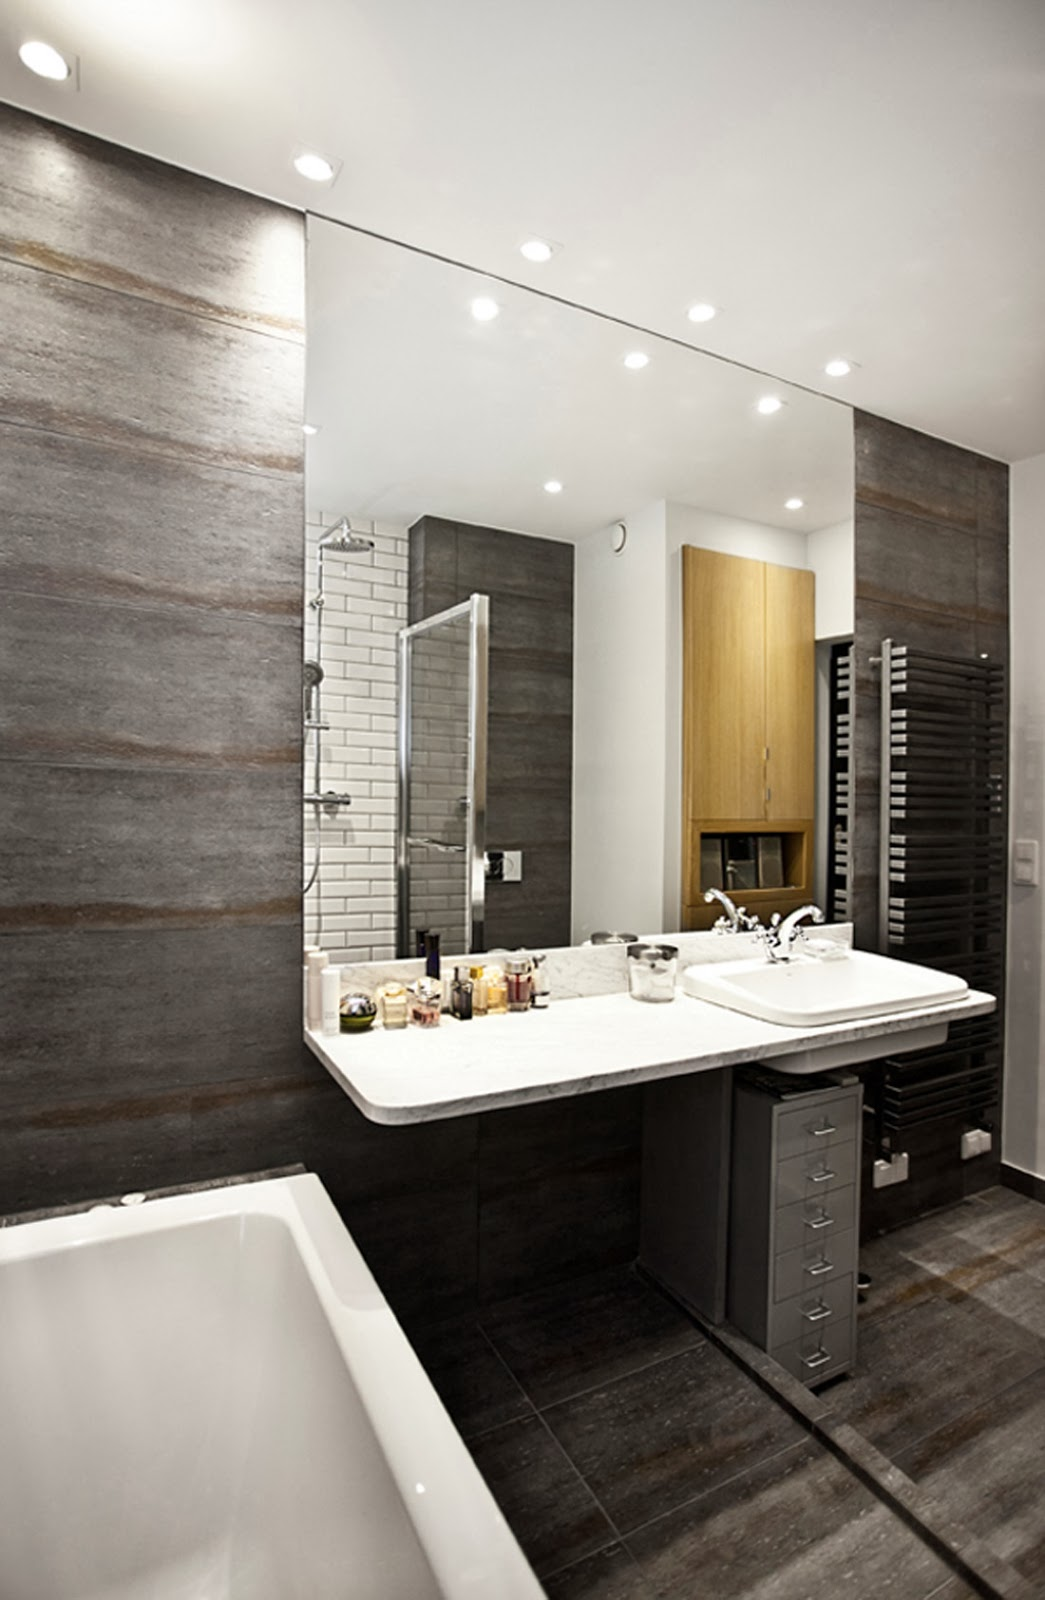 Loft bathroom ideas bathroom showers for Bathroom design ideas photos